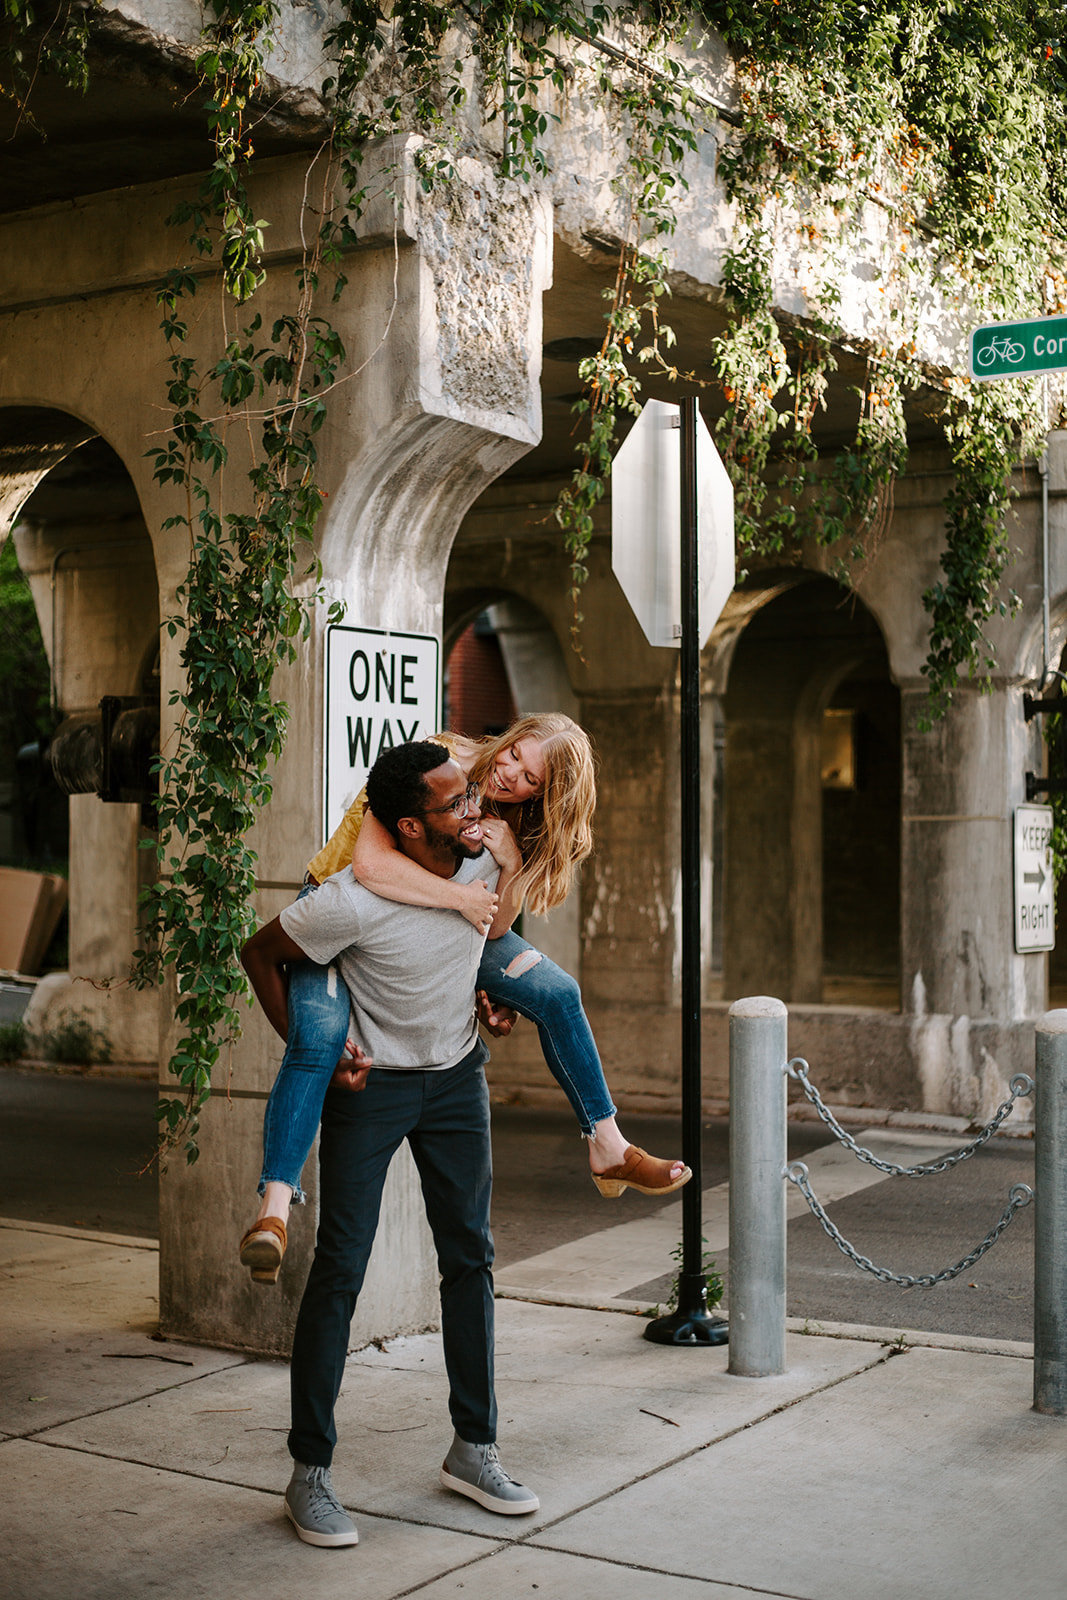 Couple doing a piggy back ride during the streets of Chicago during their engagement session